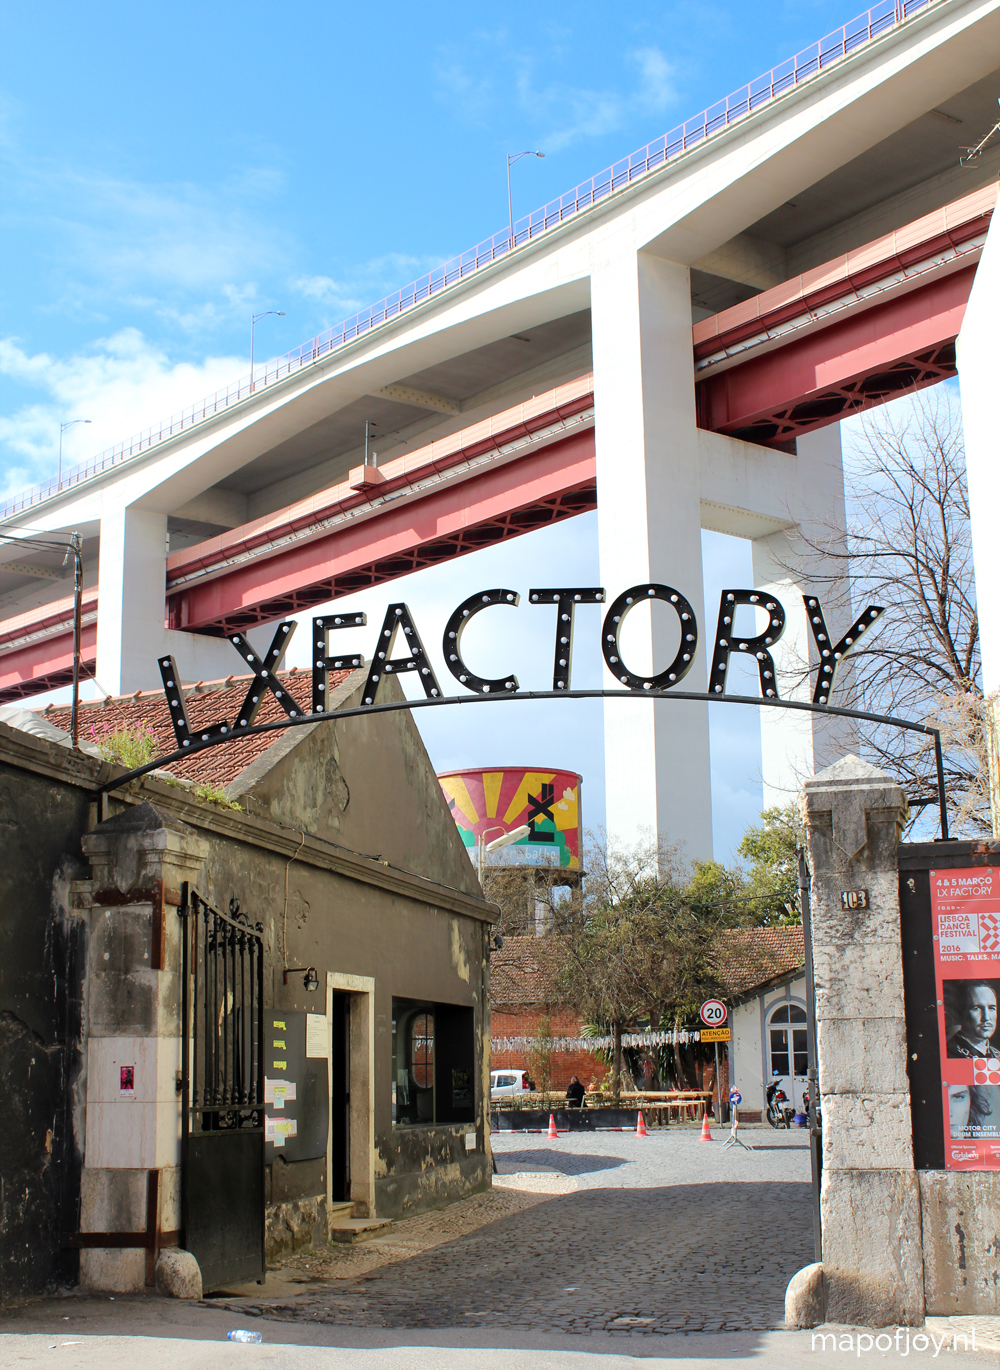 LX Factory, hotspot, Lisbon, Portugal - Map of Joy